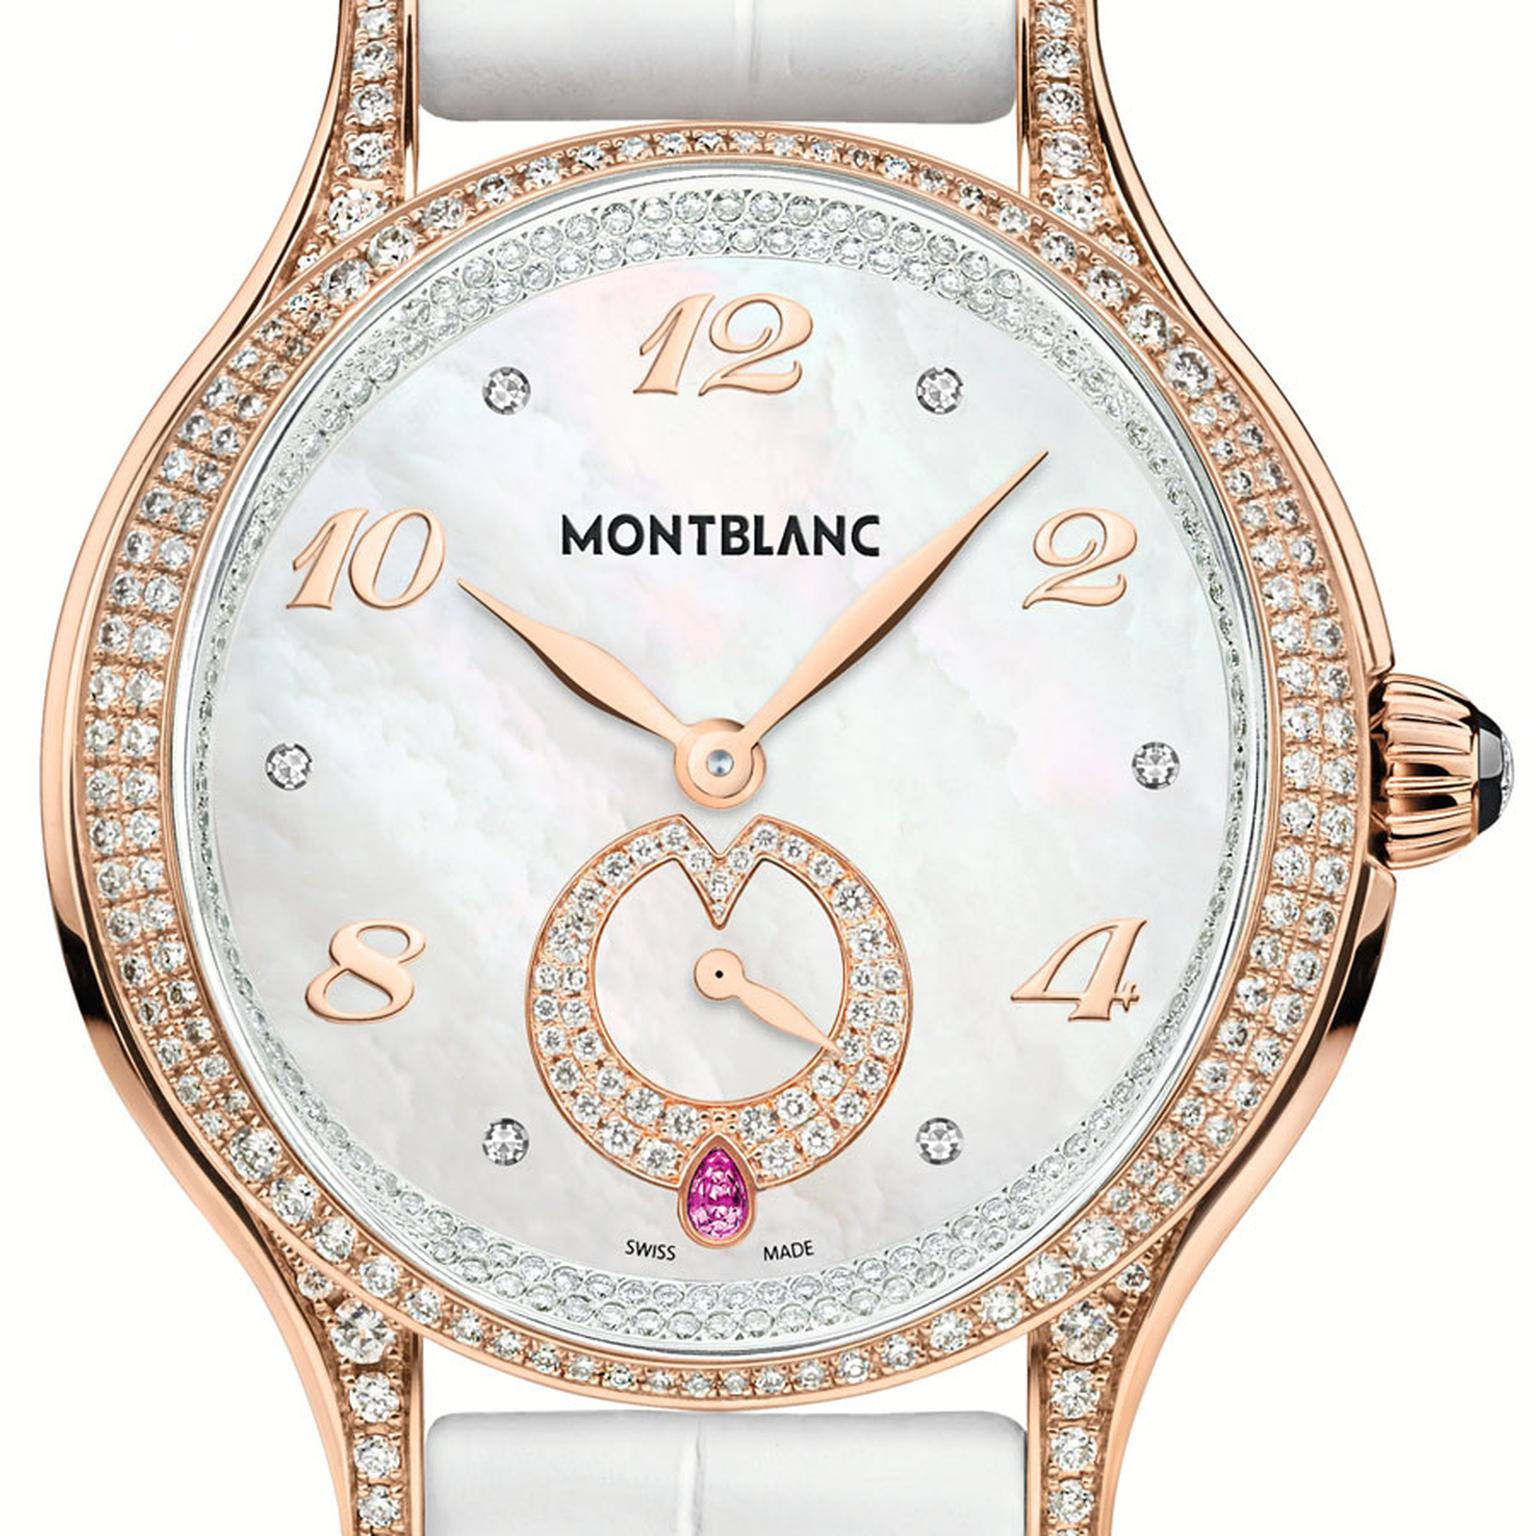 Montblanc_Collection_Princesse_Grace_de_Monaco_Timepieces_Limited_Edition_29_front